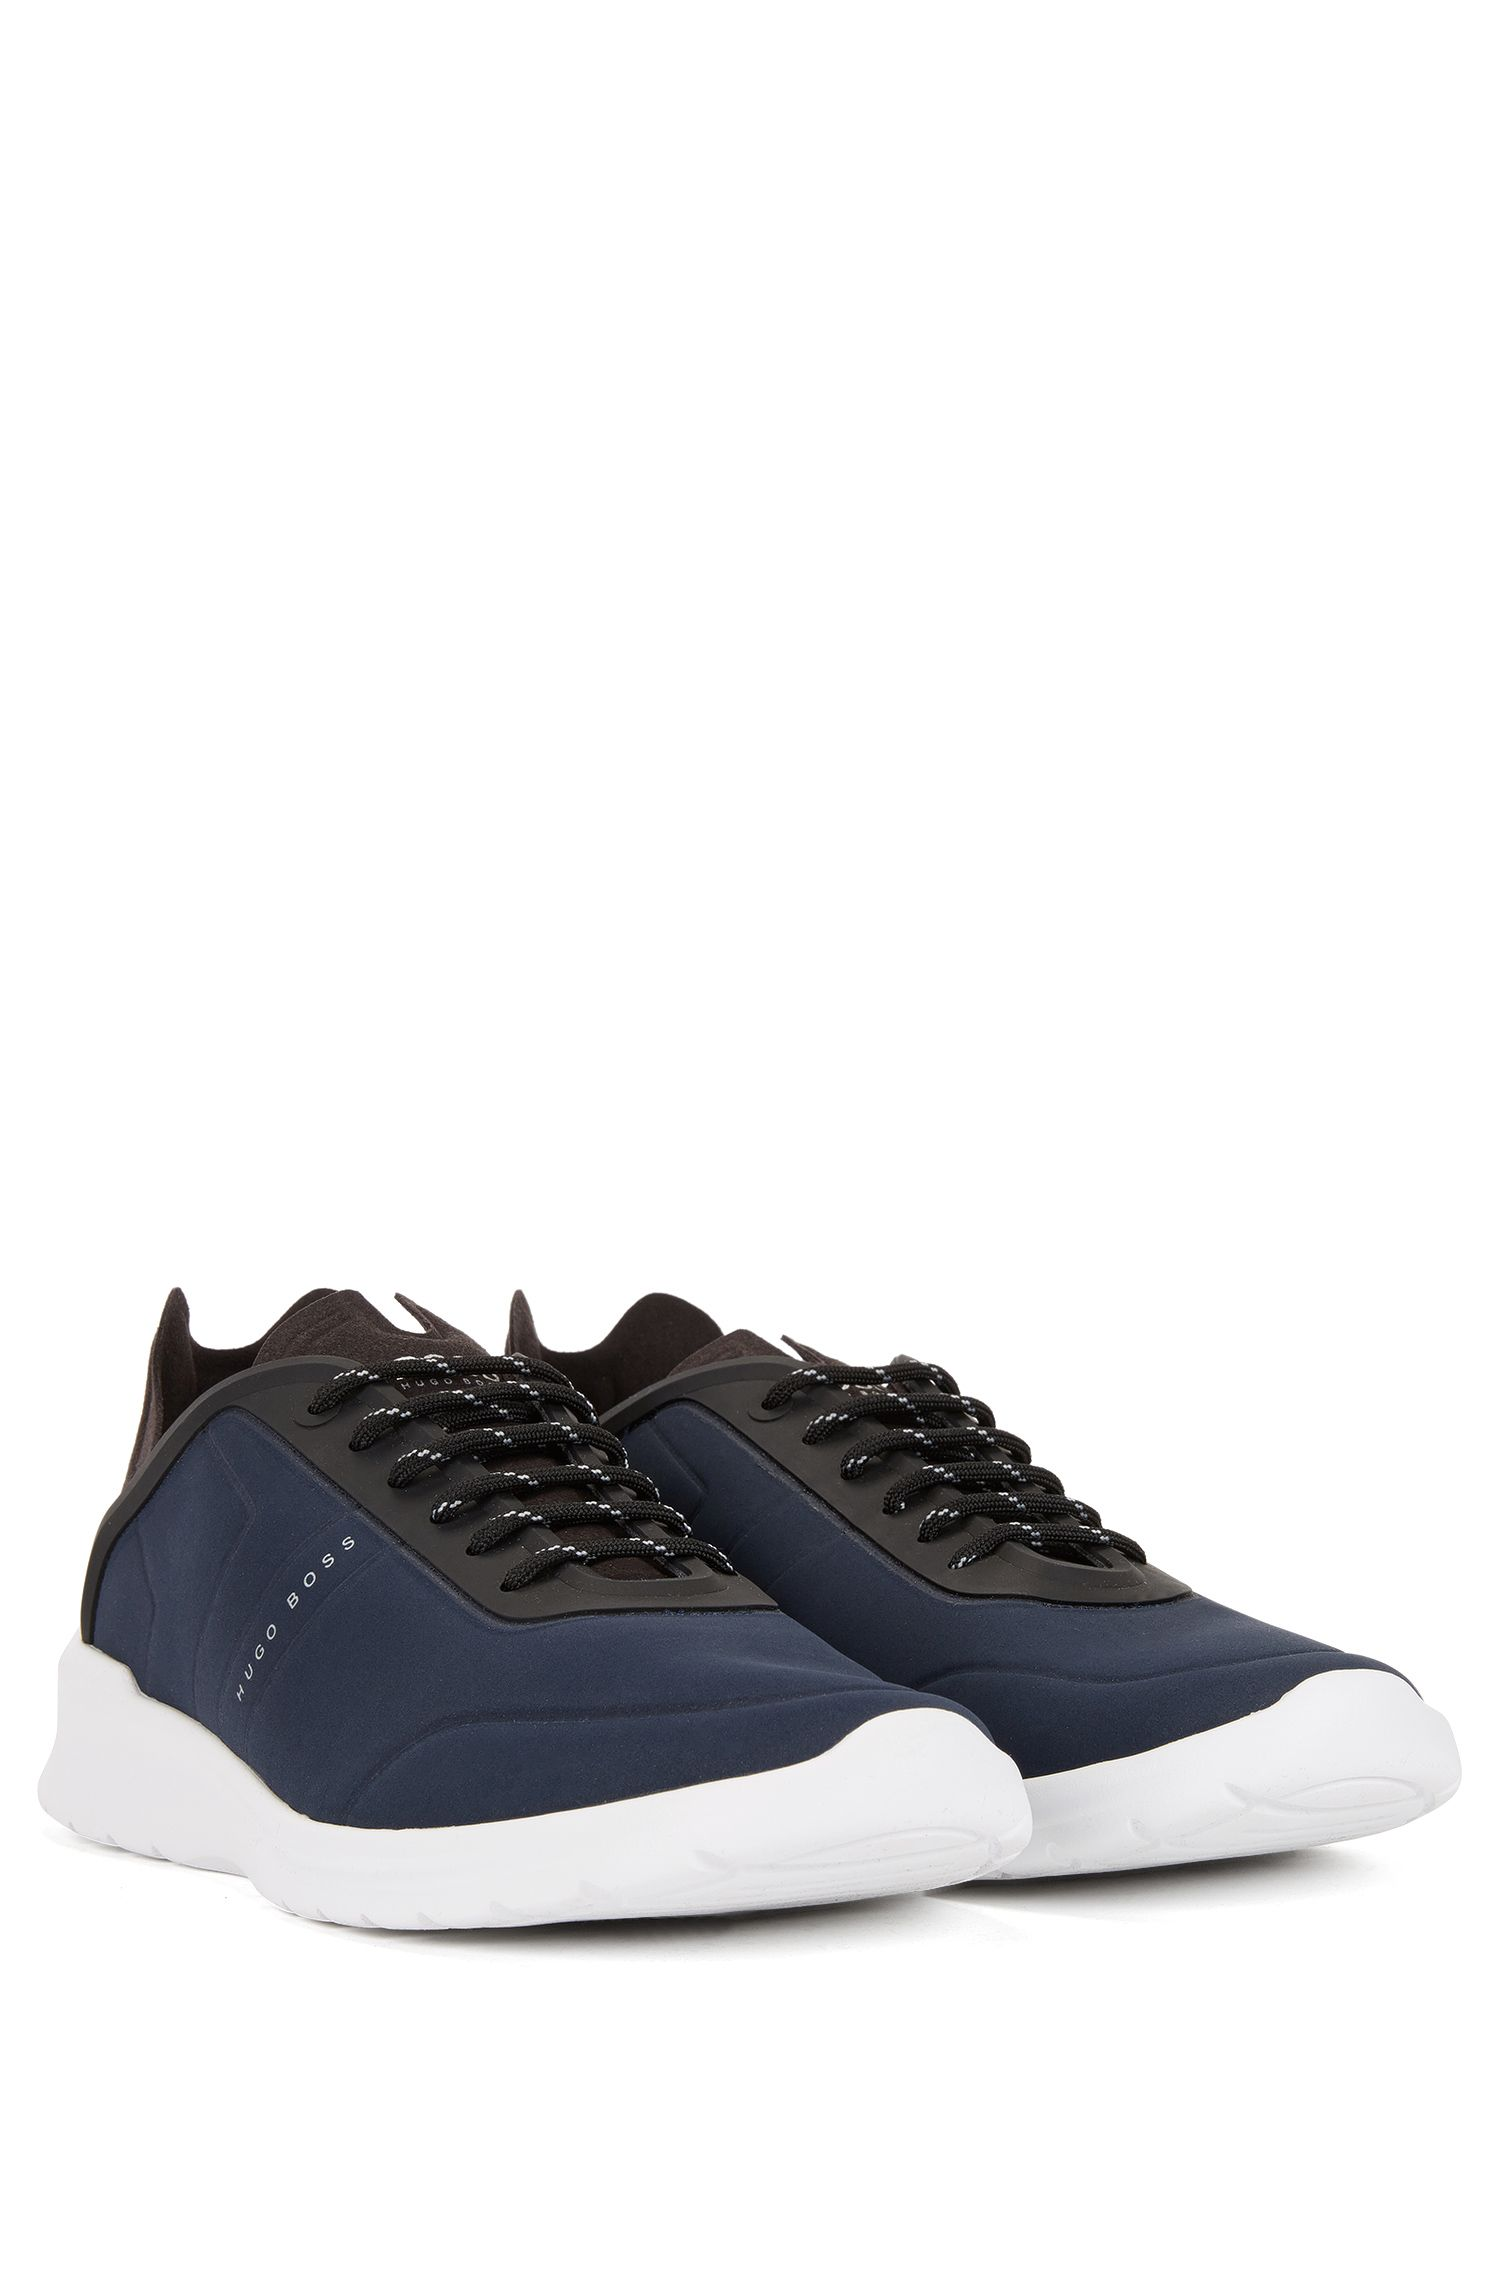 Lace-up low-top trainers with embossed nubuck-effect uppers